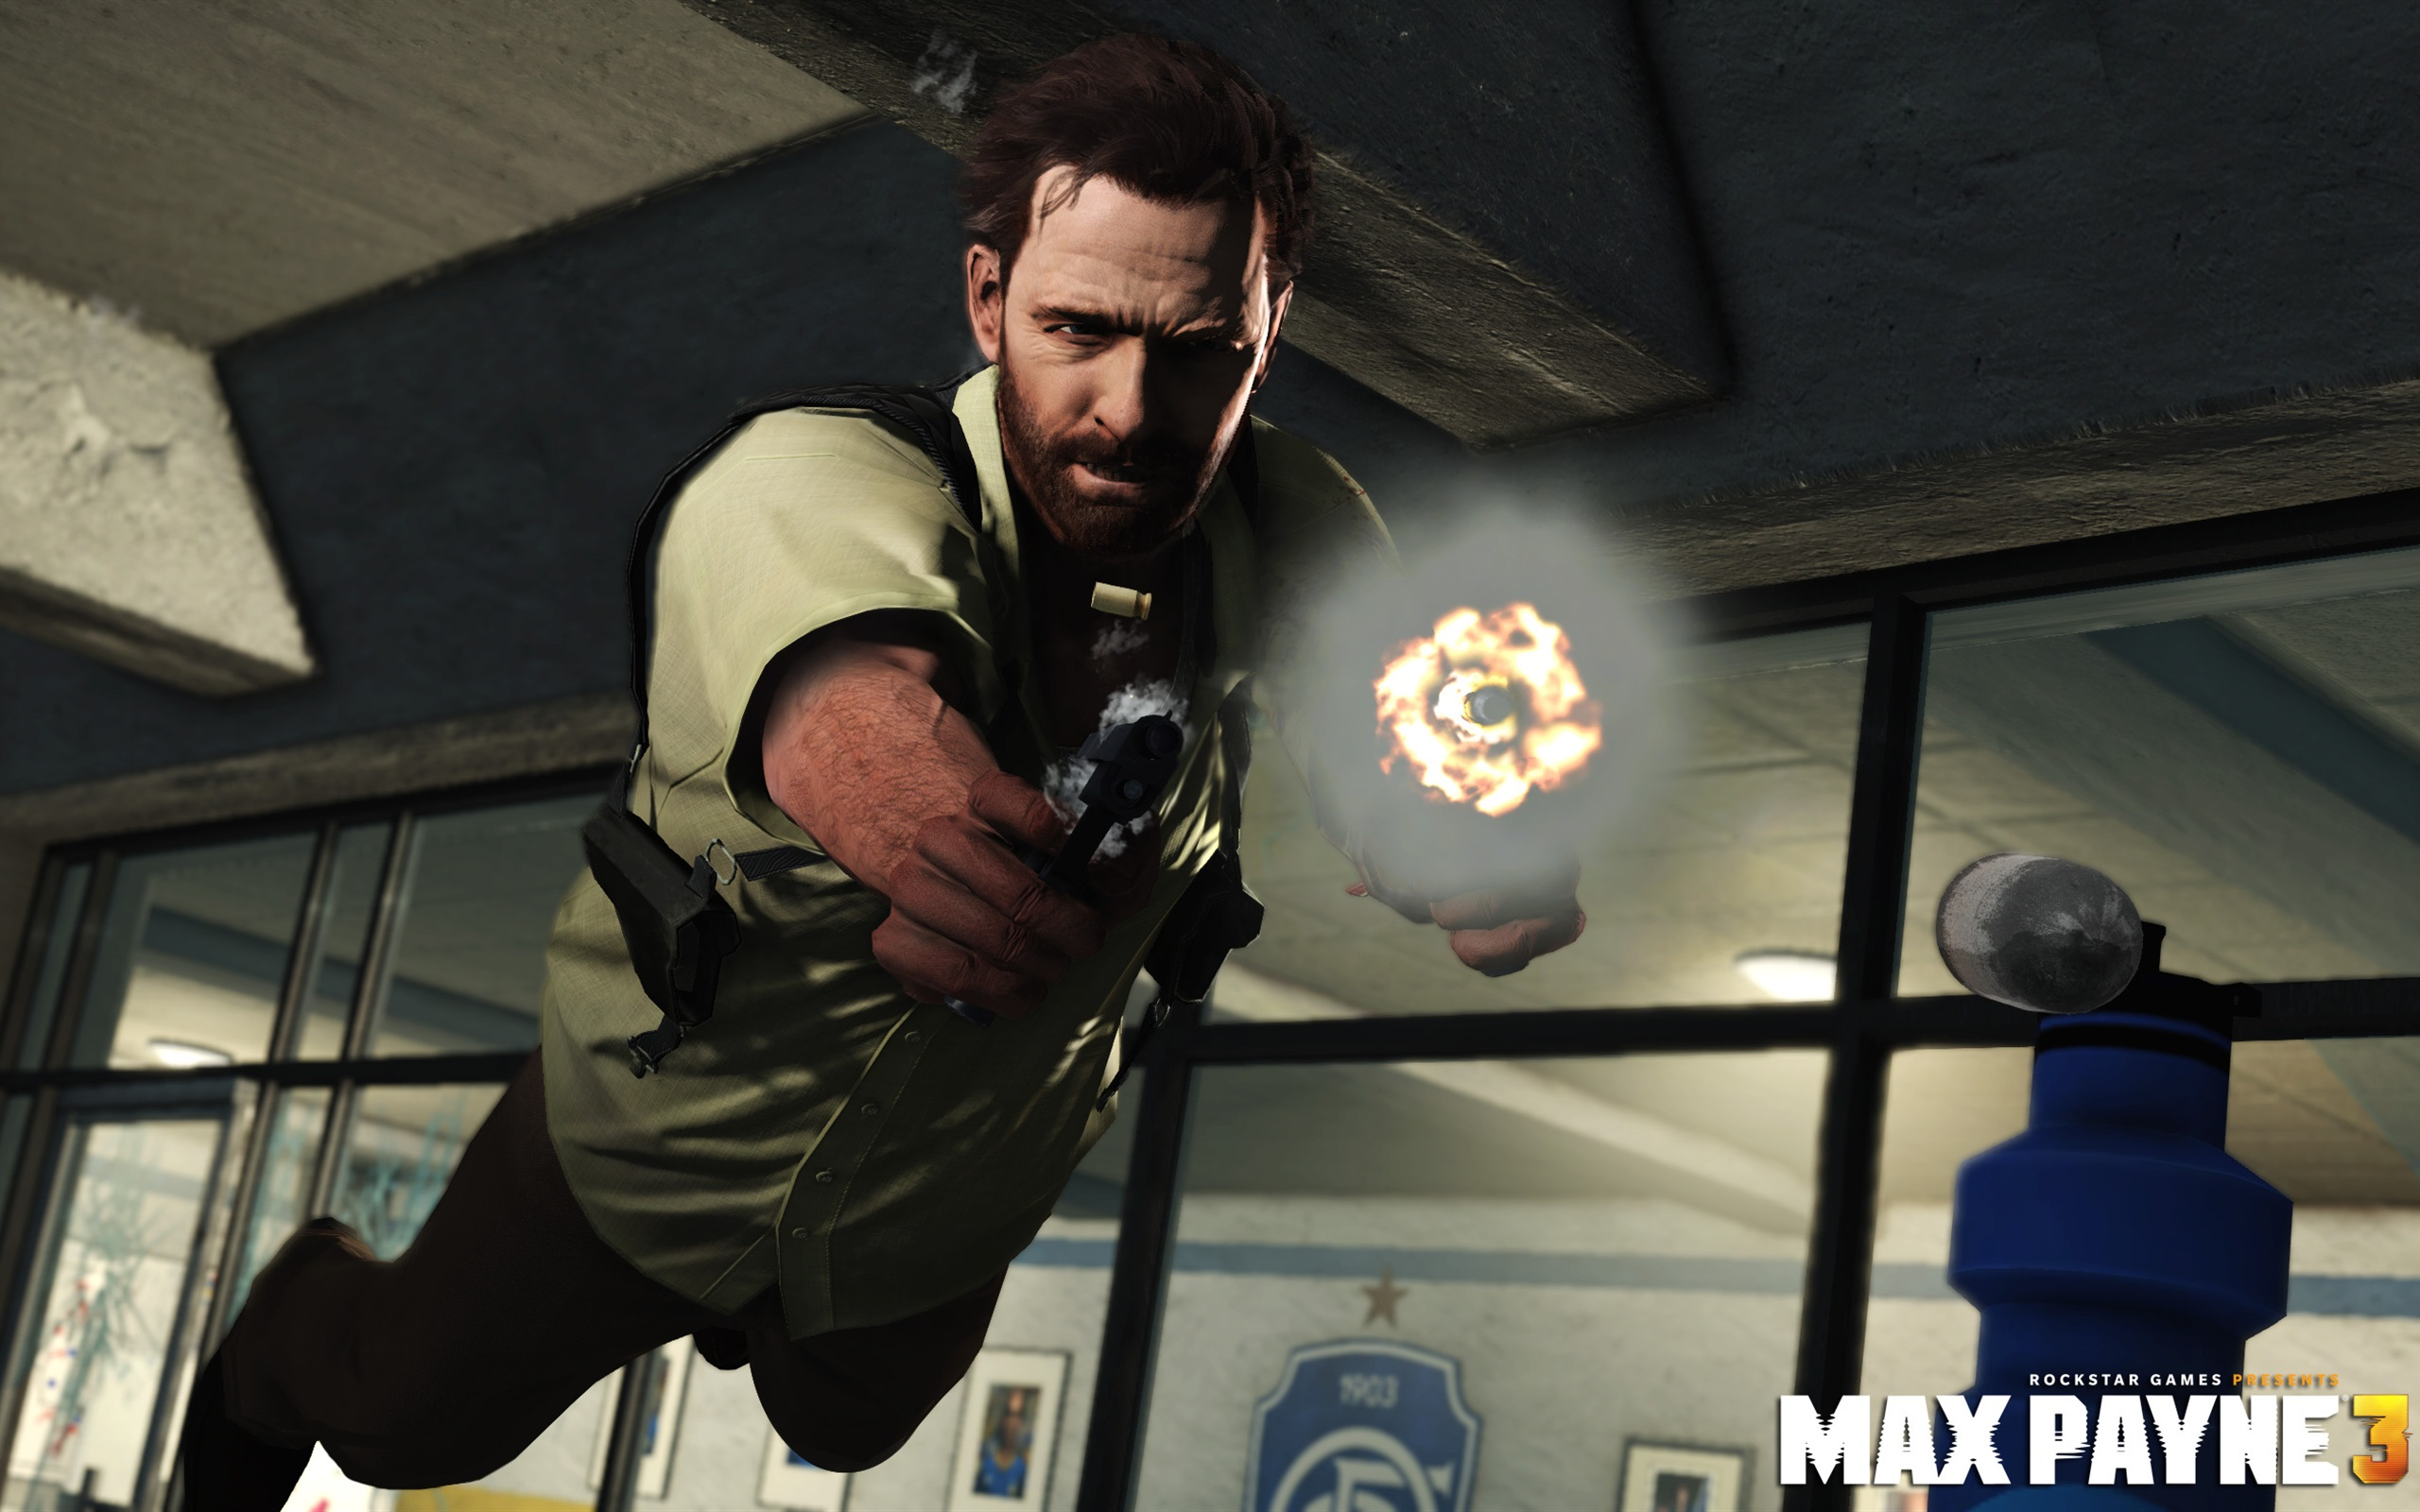 Wallpaper Max Payne 3 Xbox Games 2560x1600 Hd Picture Image